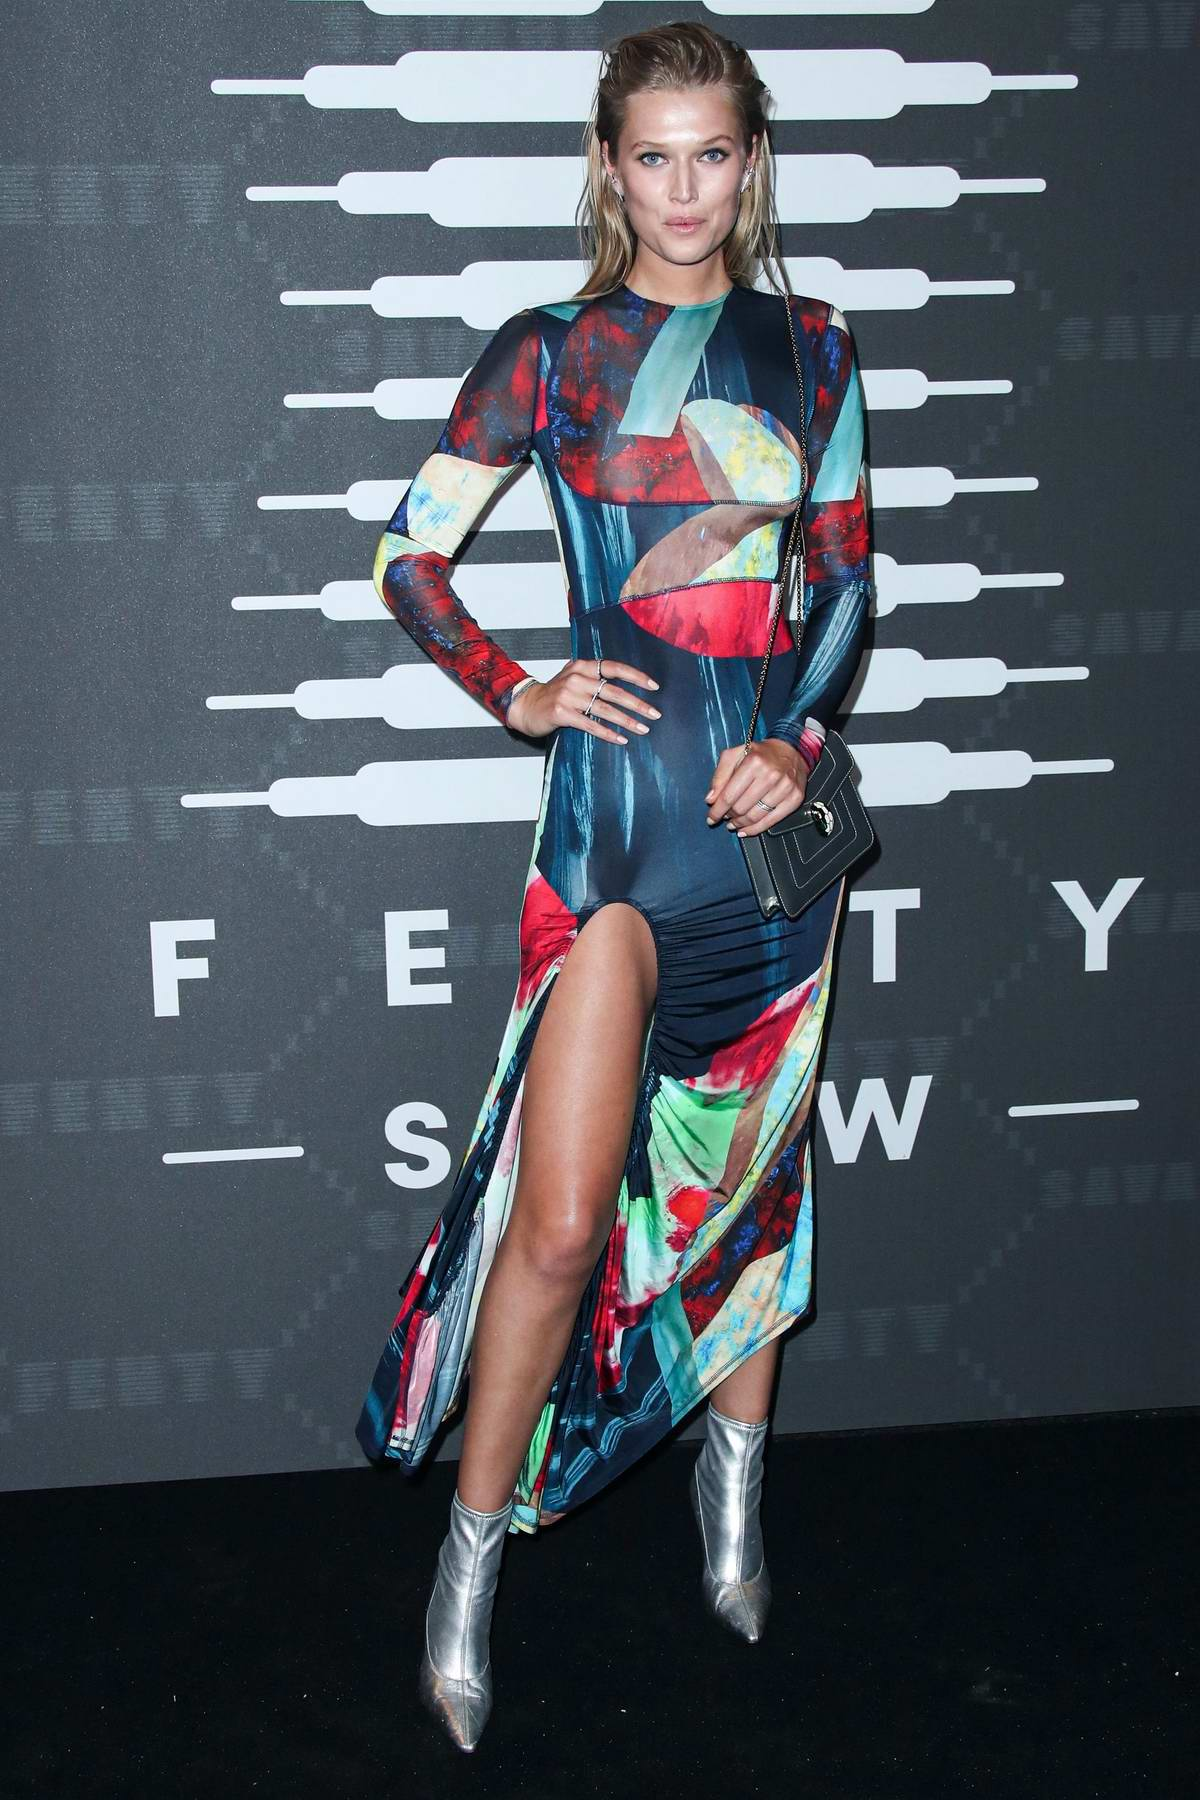 Toni Garrn attends Savage X Fenty Show during New York Fashion Week at Barclays Center in Brooklyn, New York City